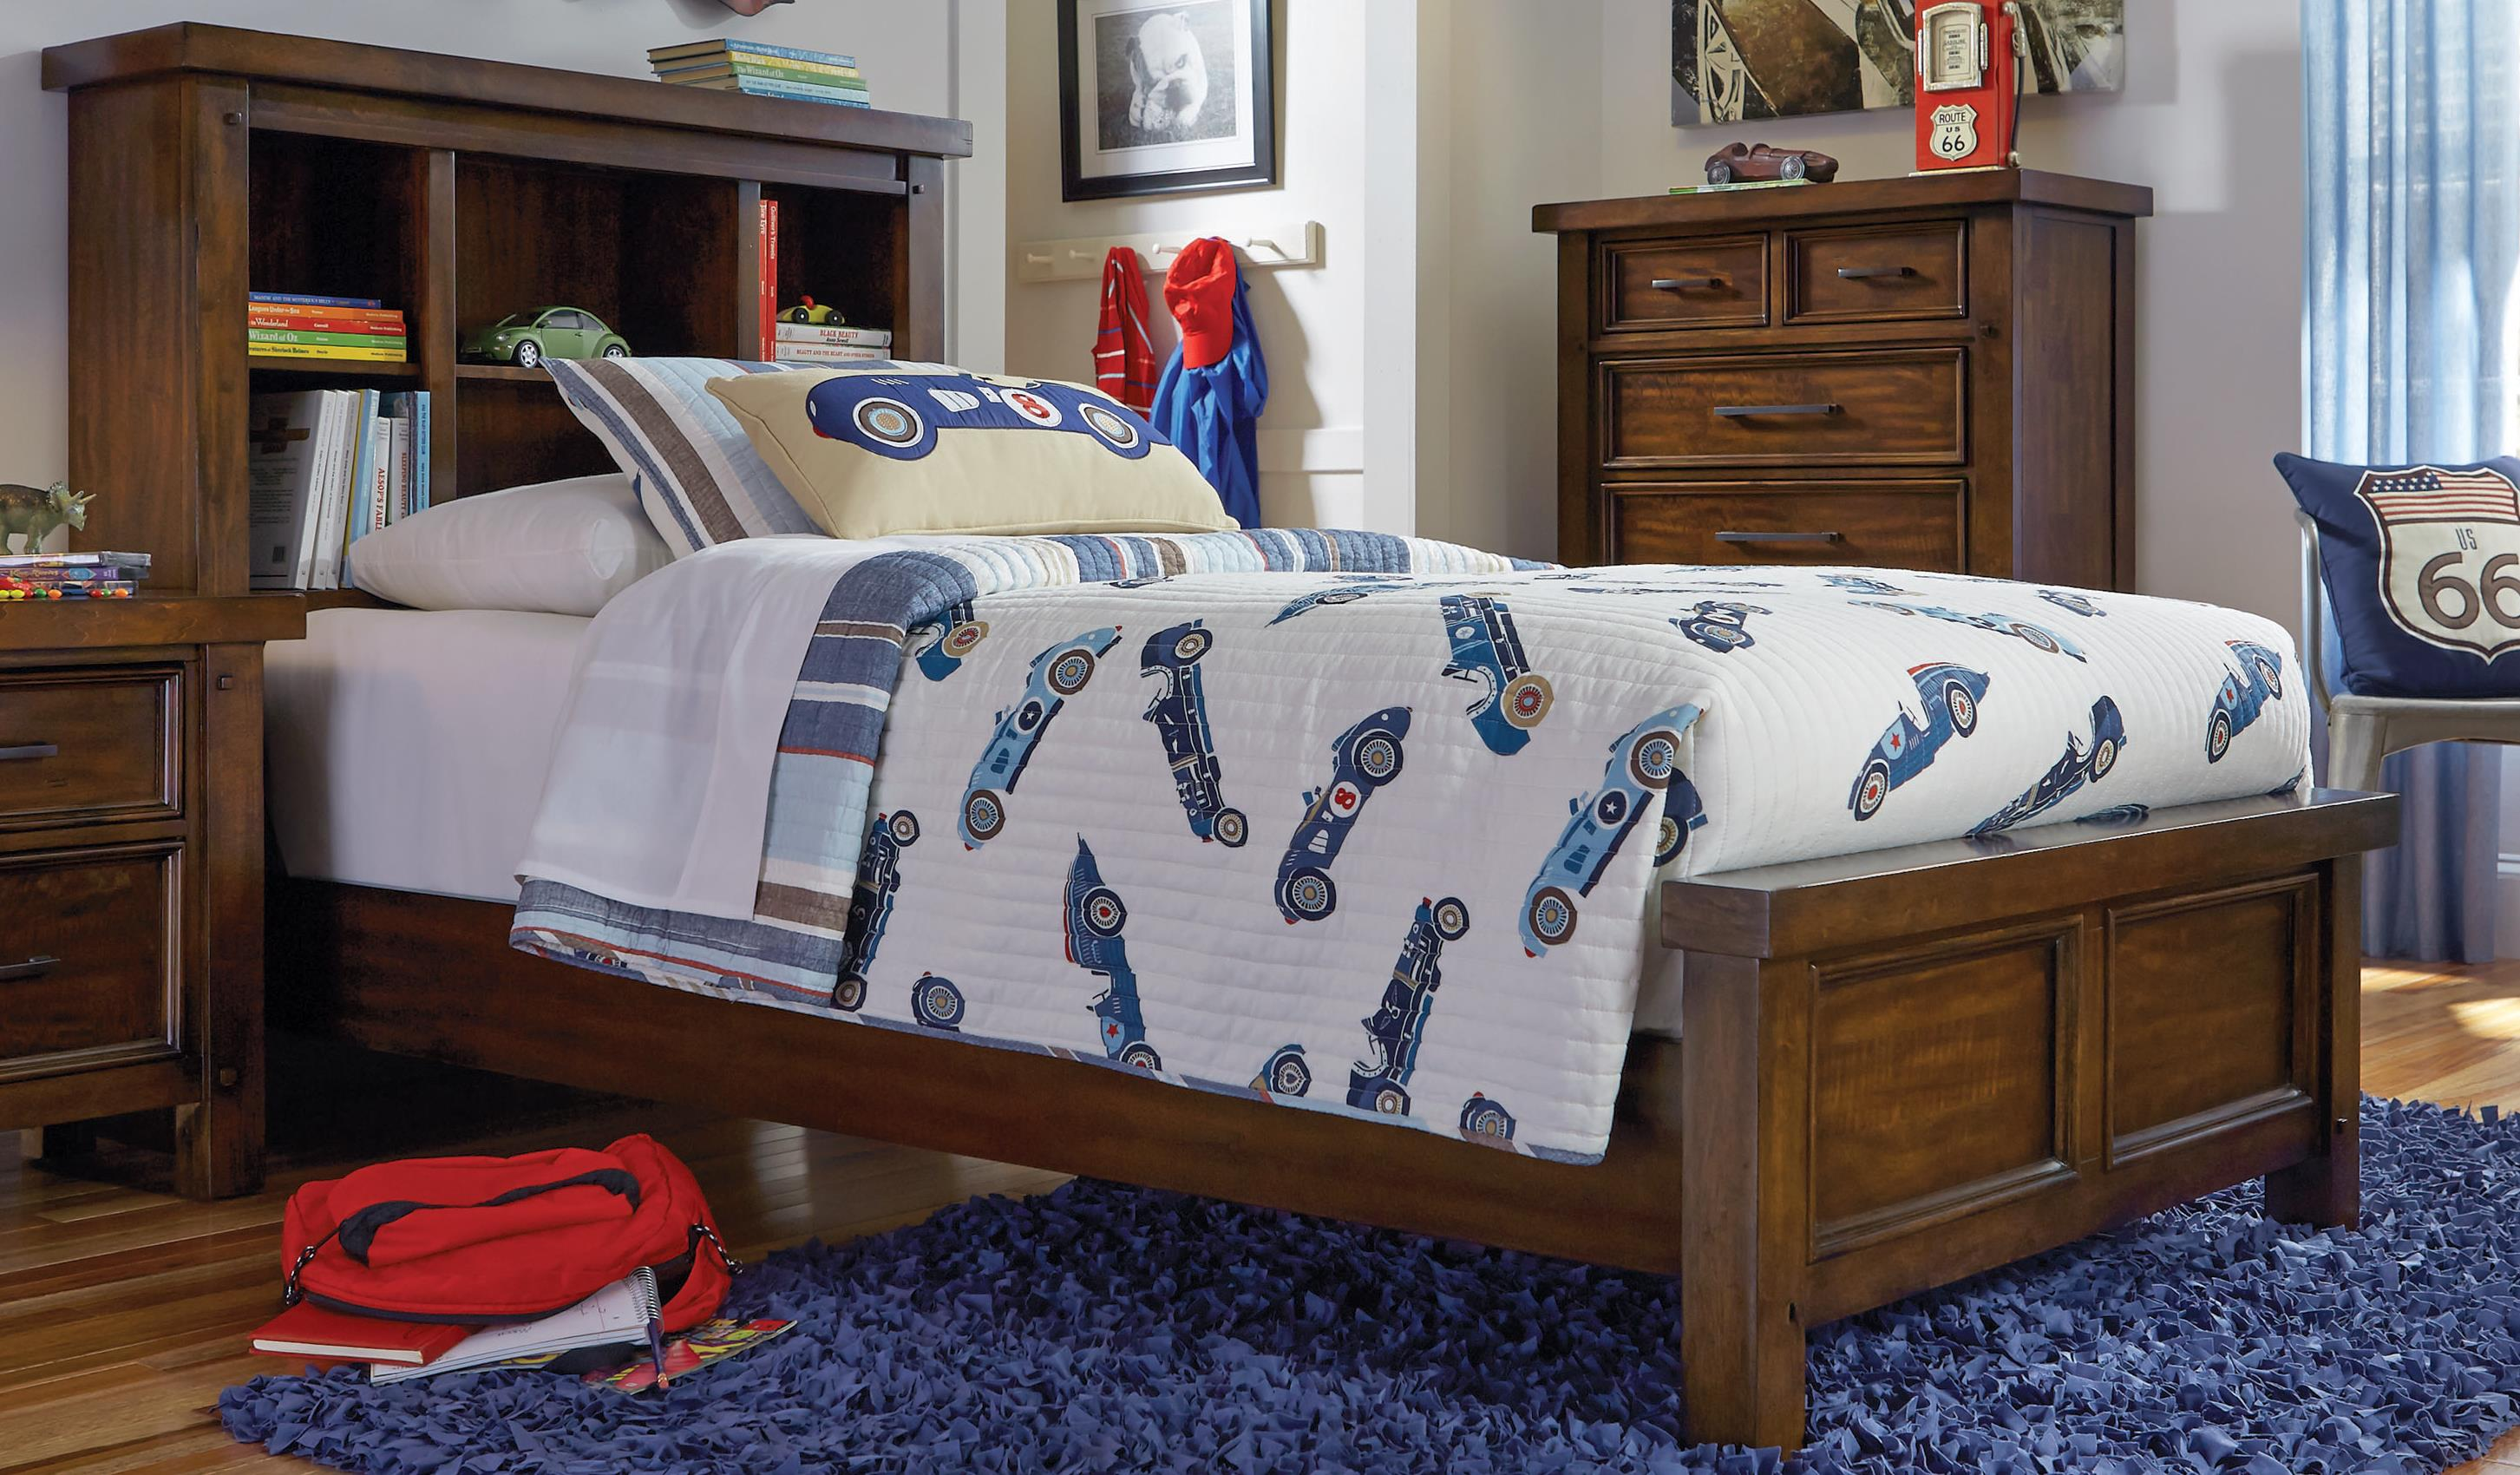 Sorrento Sorrento Twin Bookcase Bed by Holland House at Morris Home